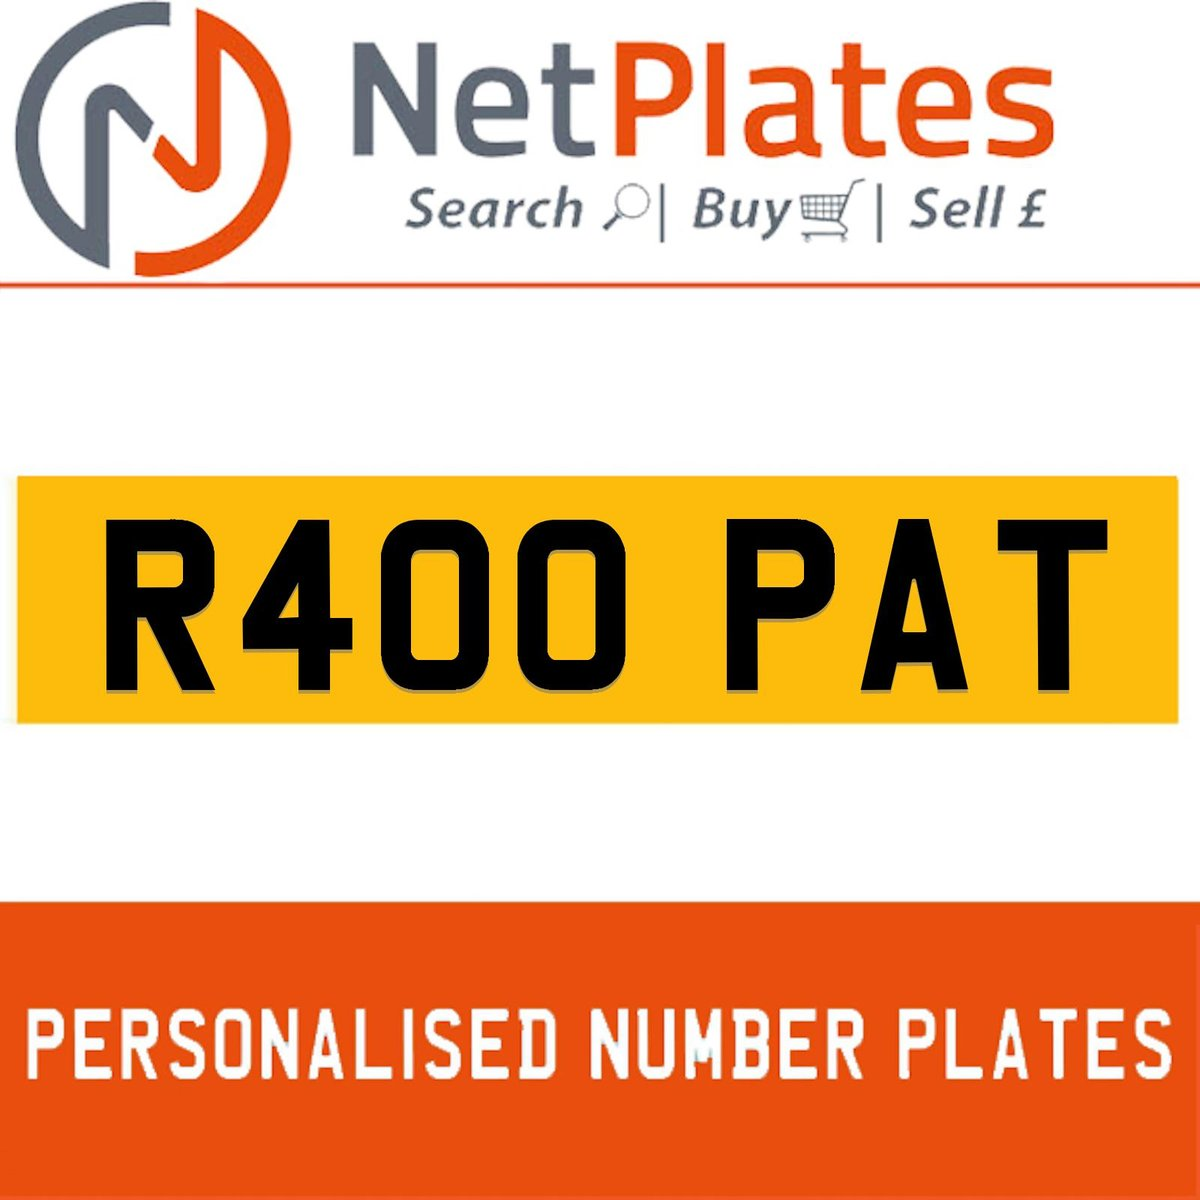 R400 PAT PERSONALISED PRIVATE CHERISHED DVLA NUMBER PLATE For Sale (picture 1 of 5)